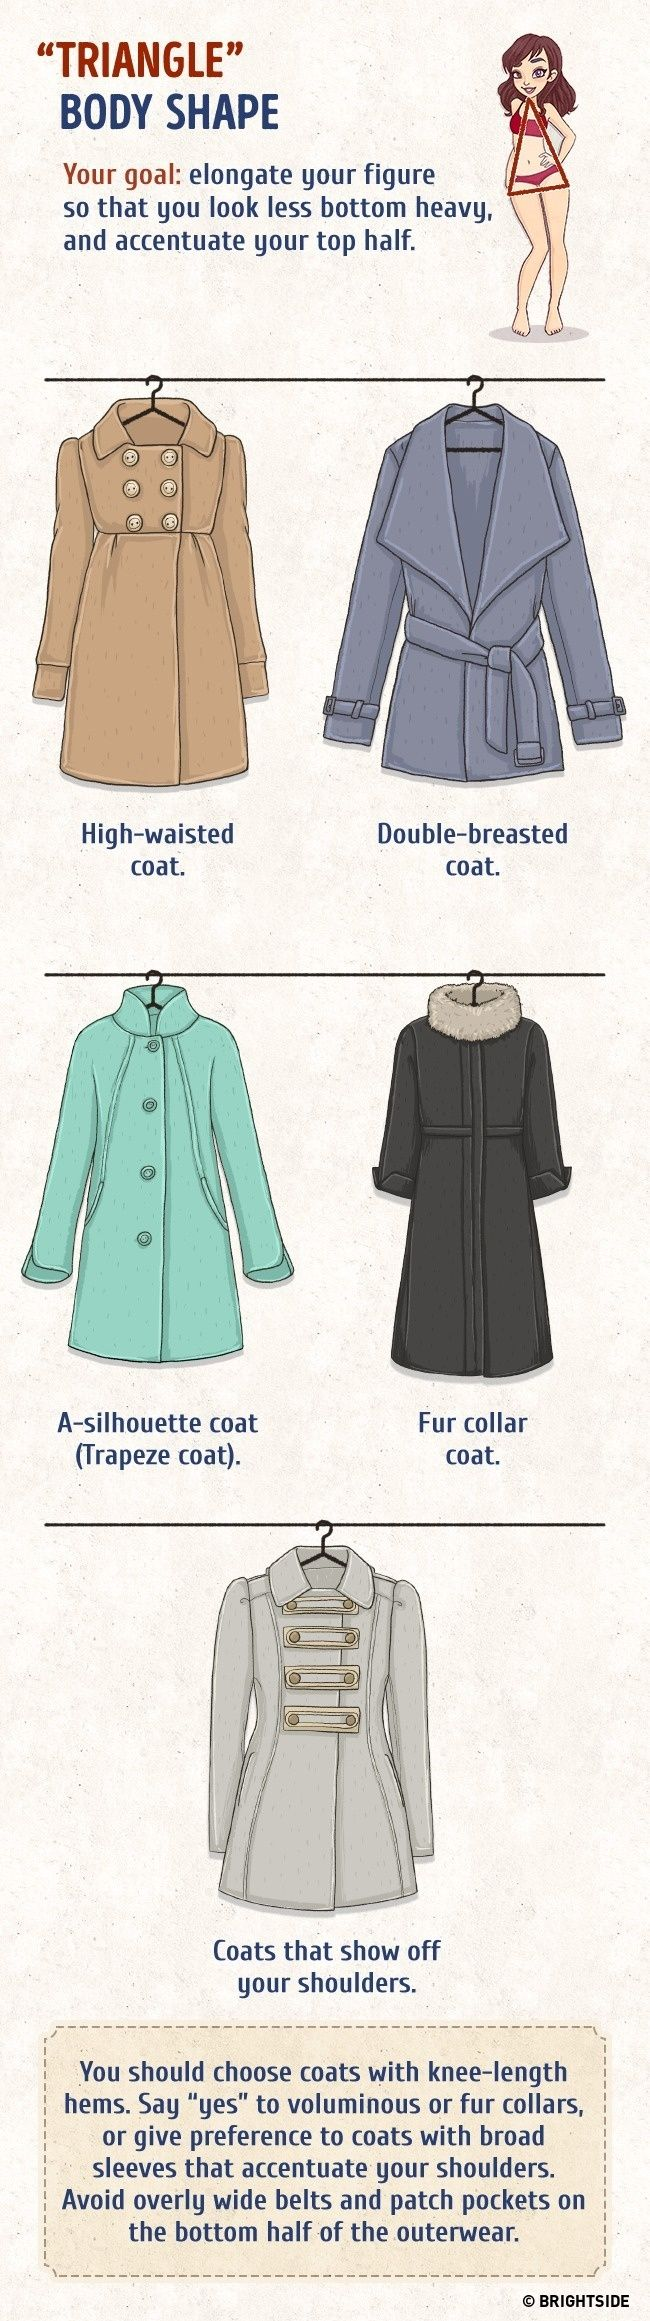 A thoroughly useful guide to finding the best coat for your body type